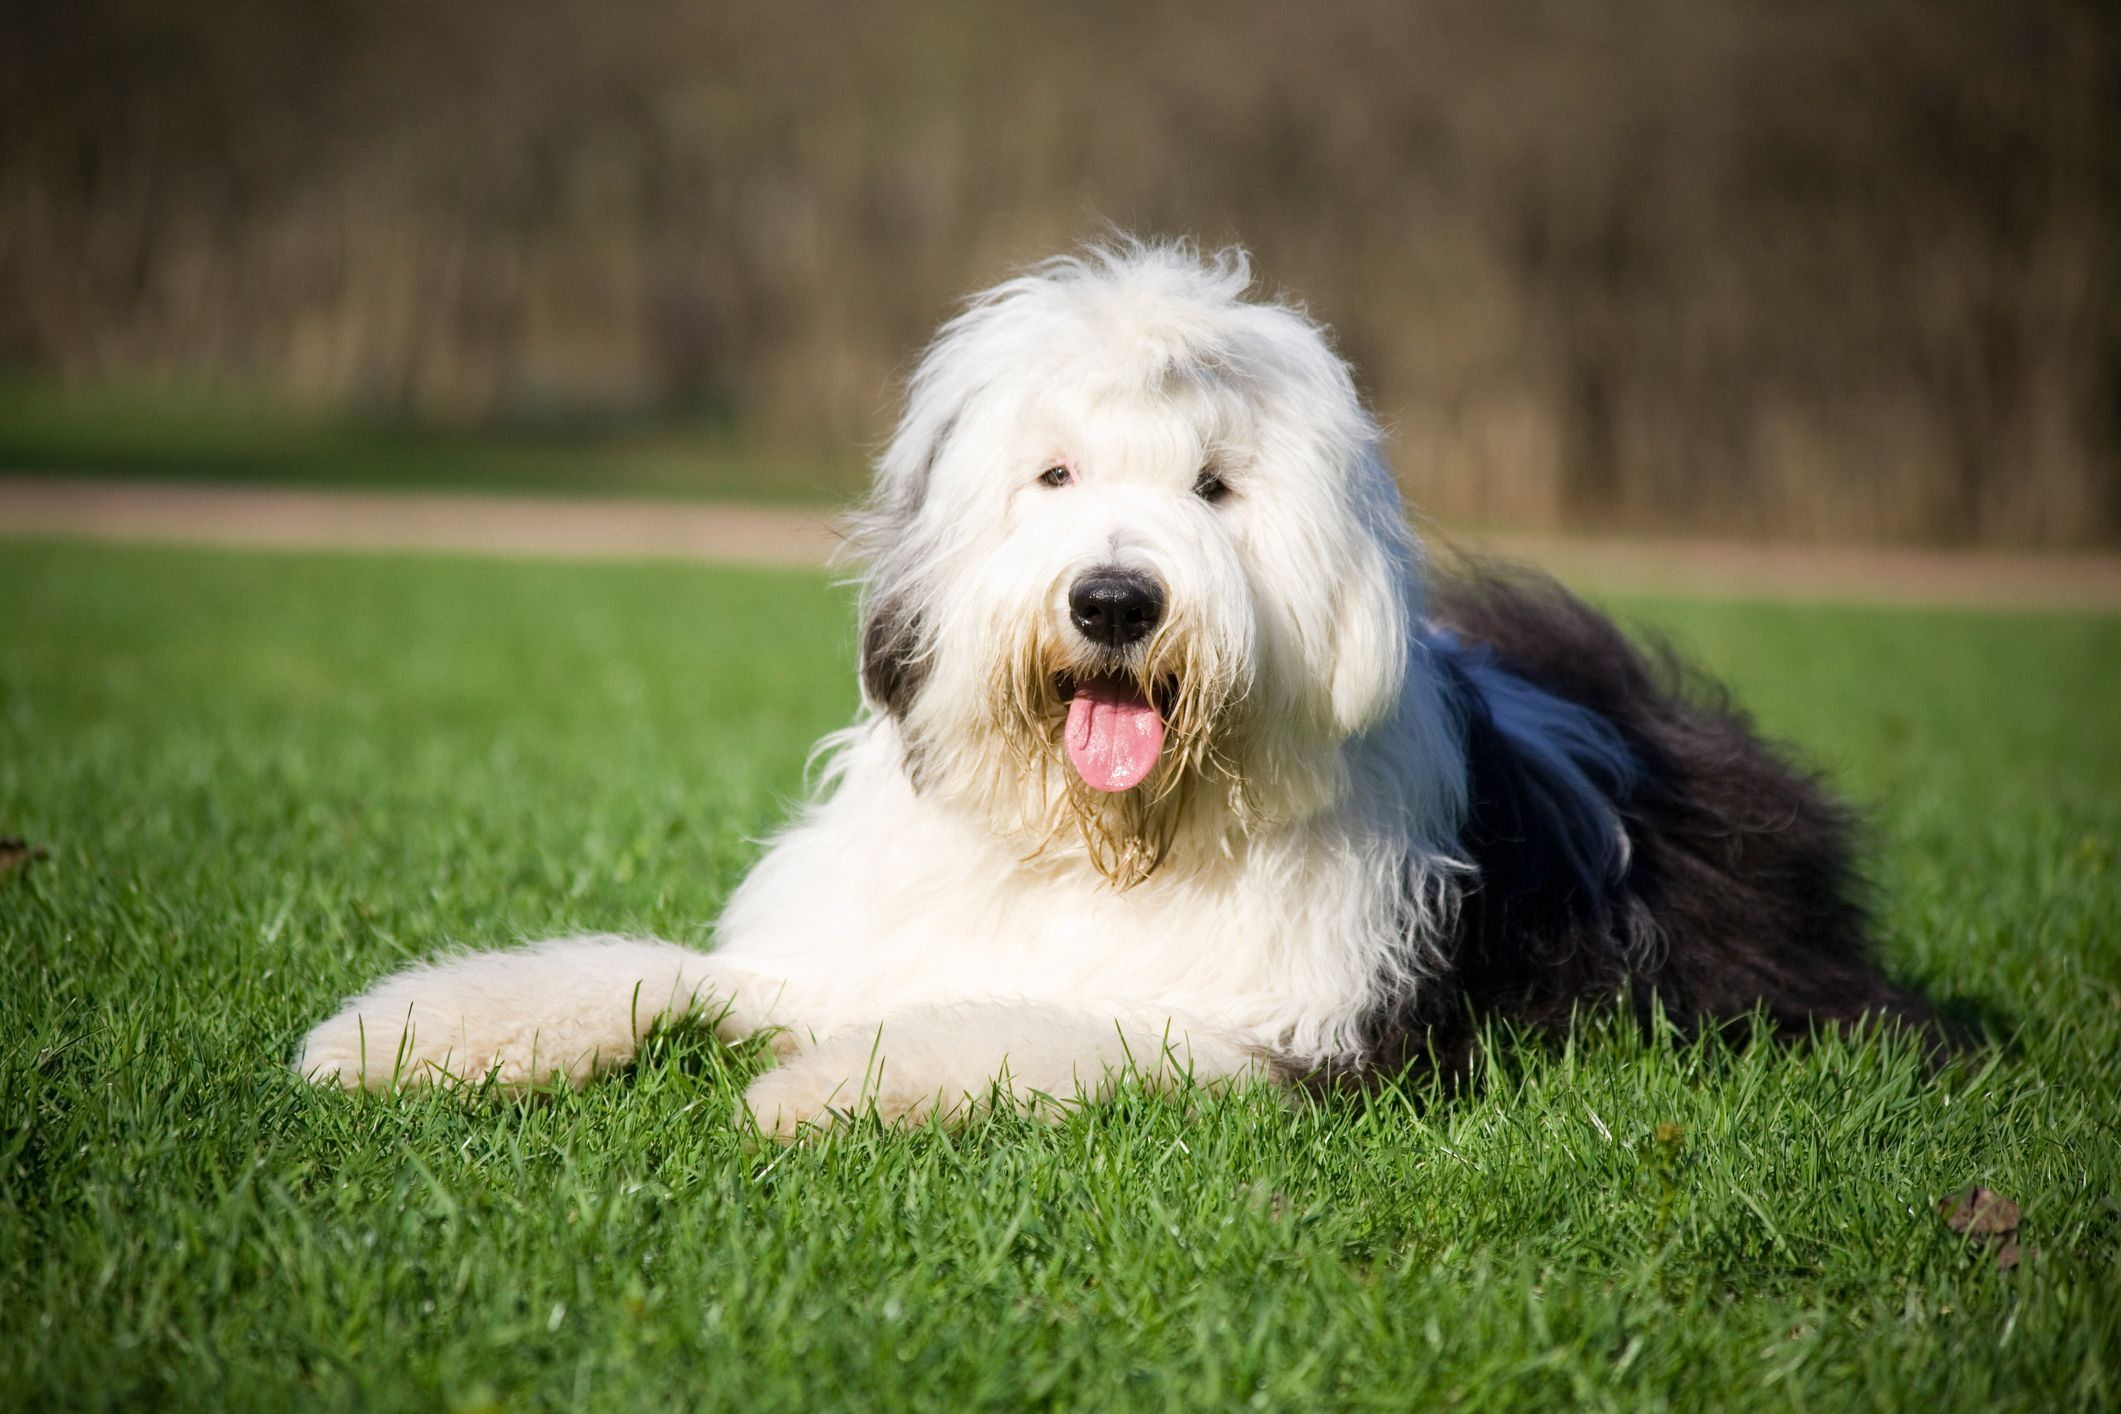 The Old English Sheepdog is officially now at risk of extinction, according to The Kennel Club